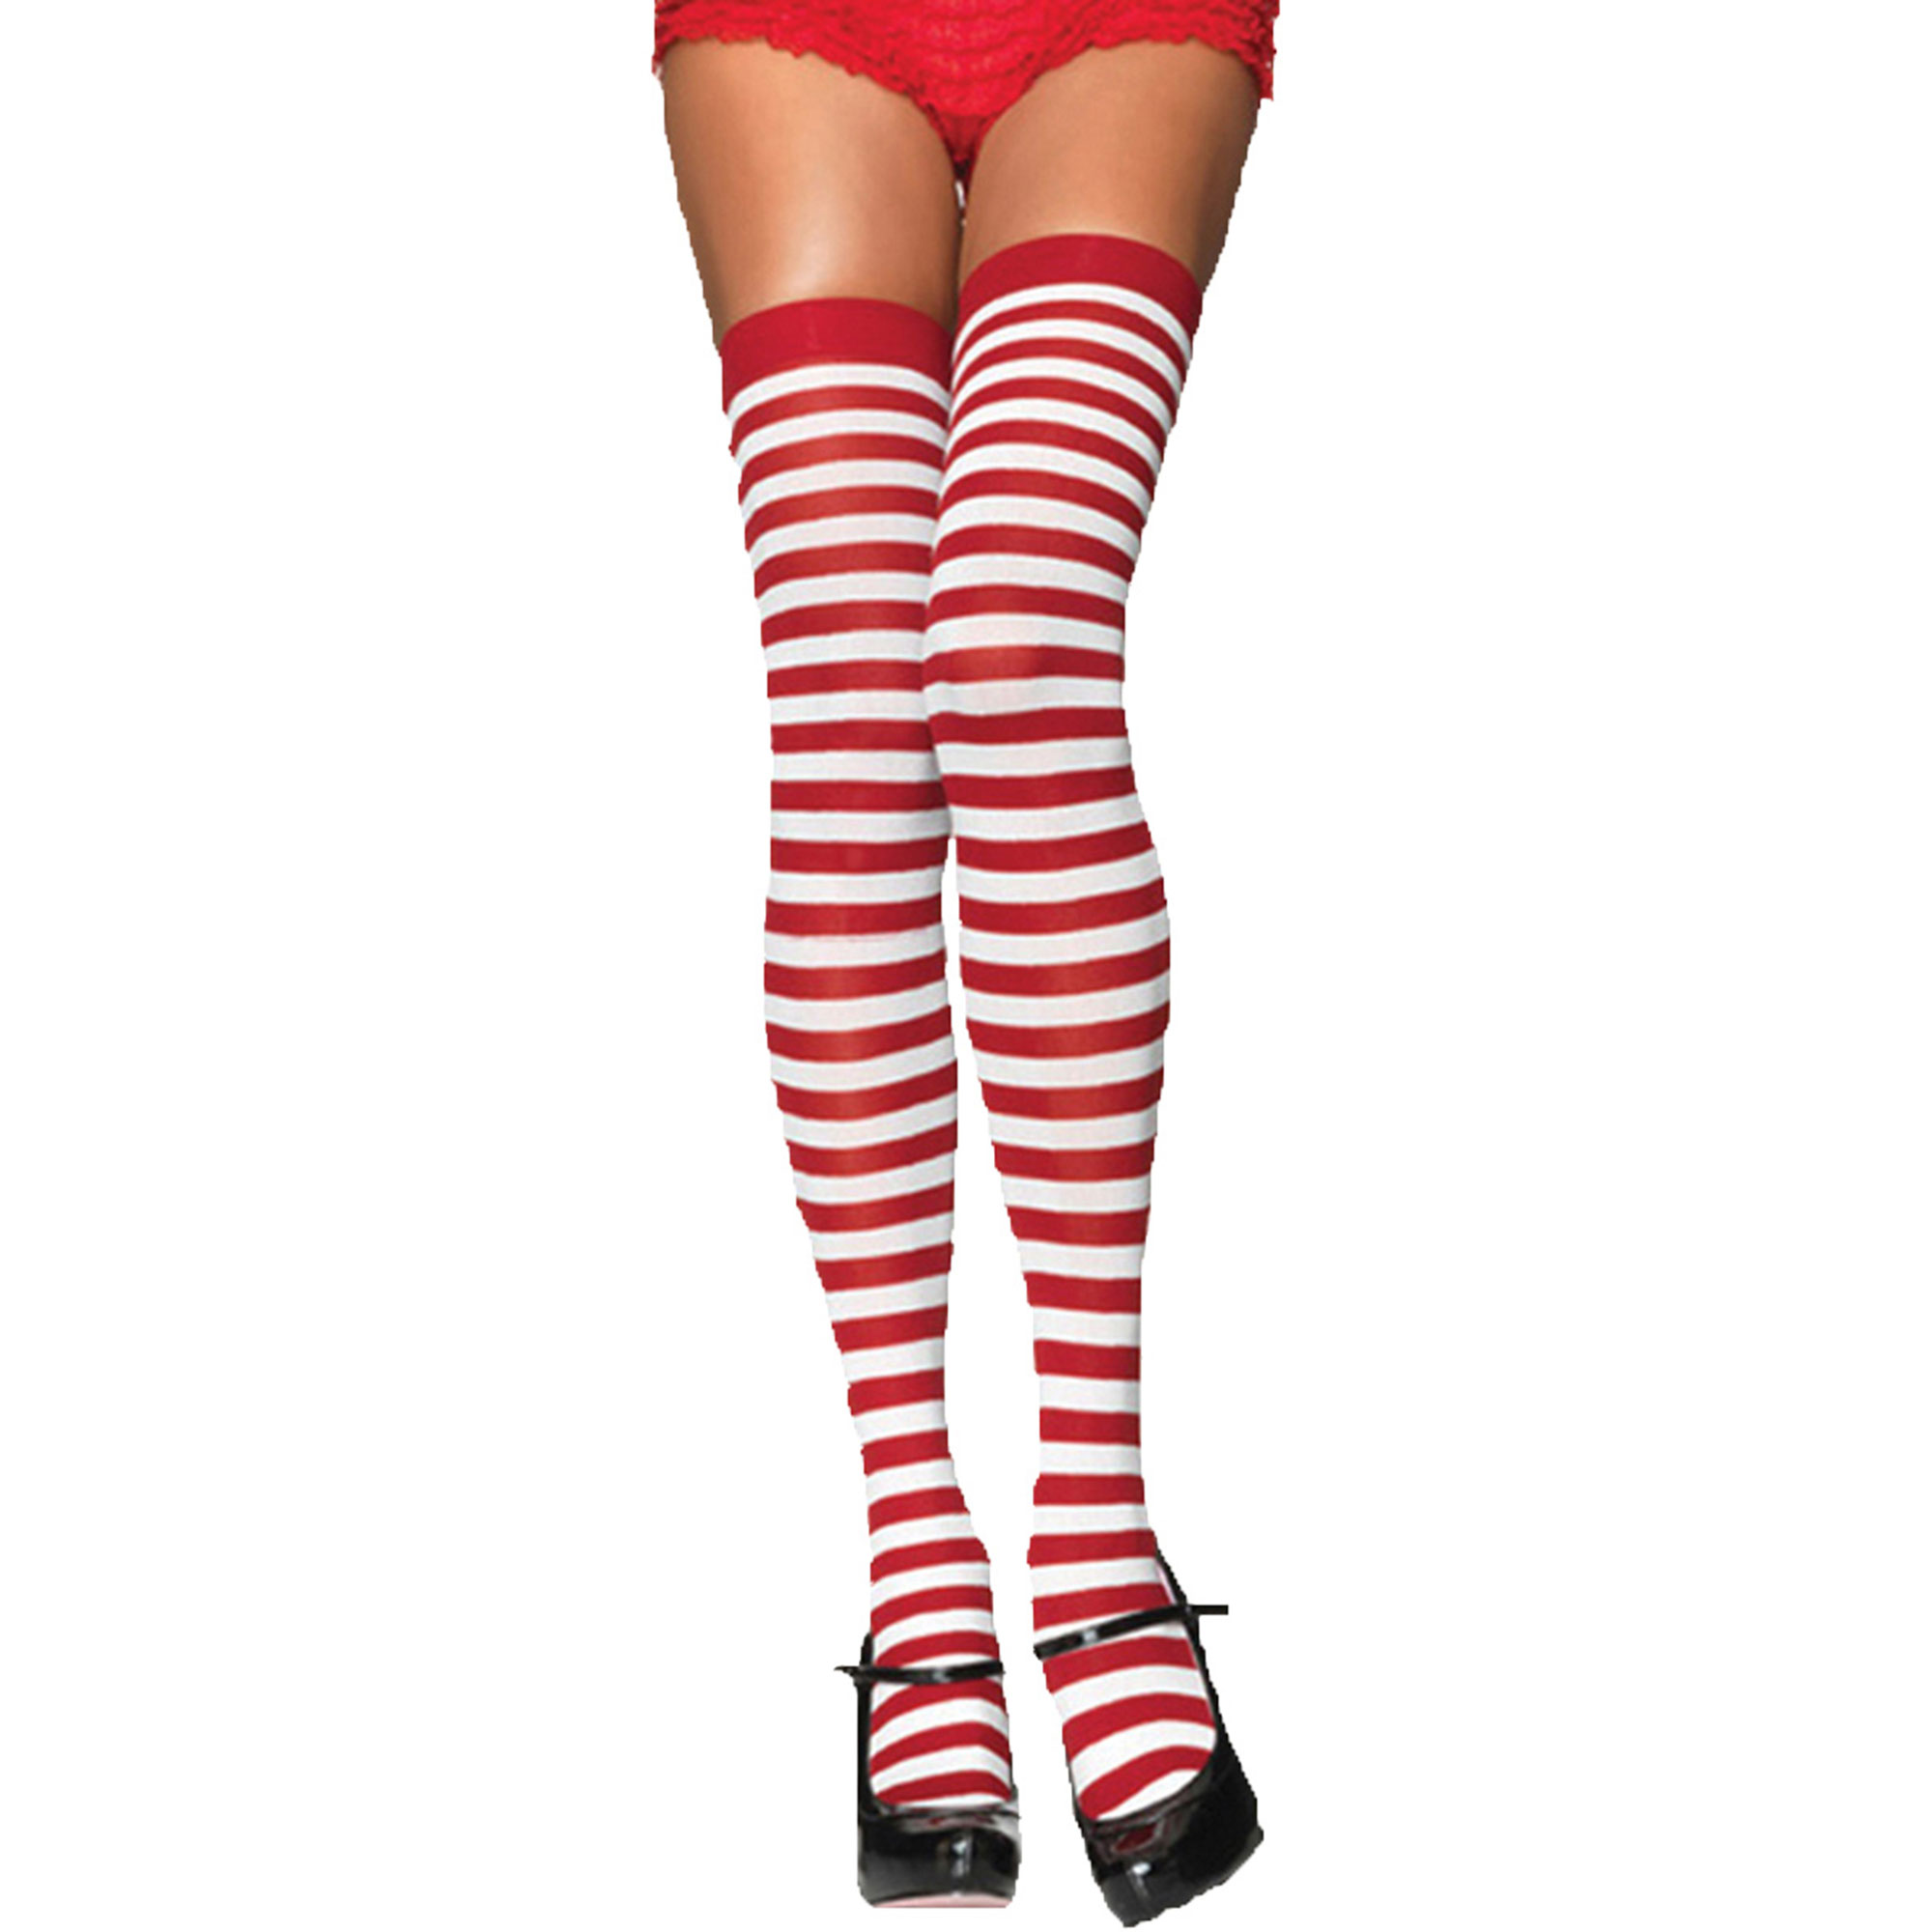 Morris Costume Womens Stocking Striped Thigh High White Red One Size, Style UA6005WRD